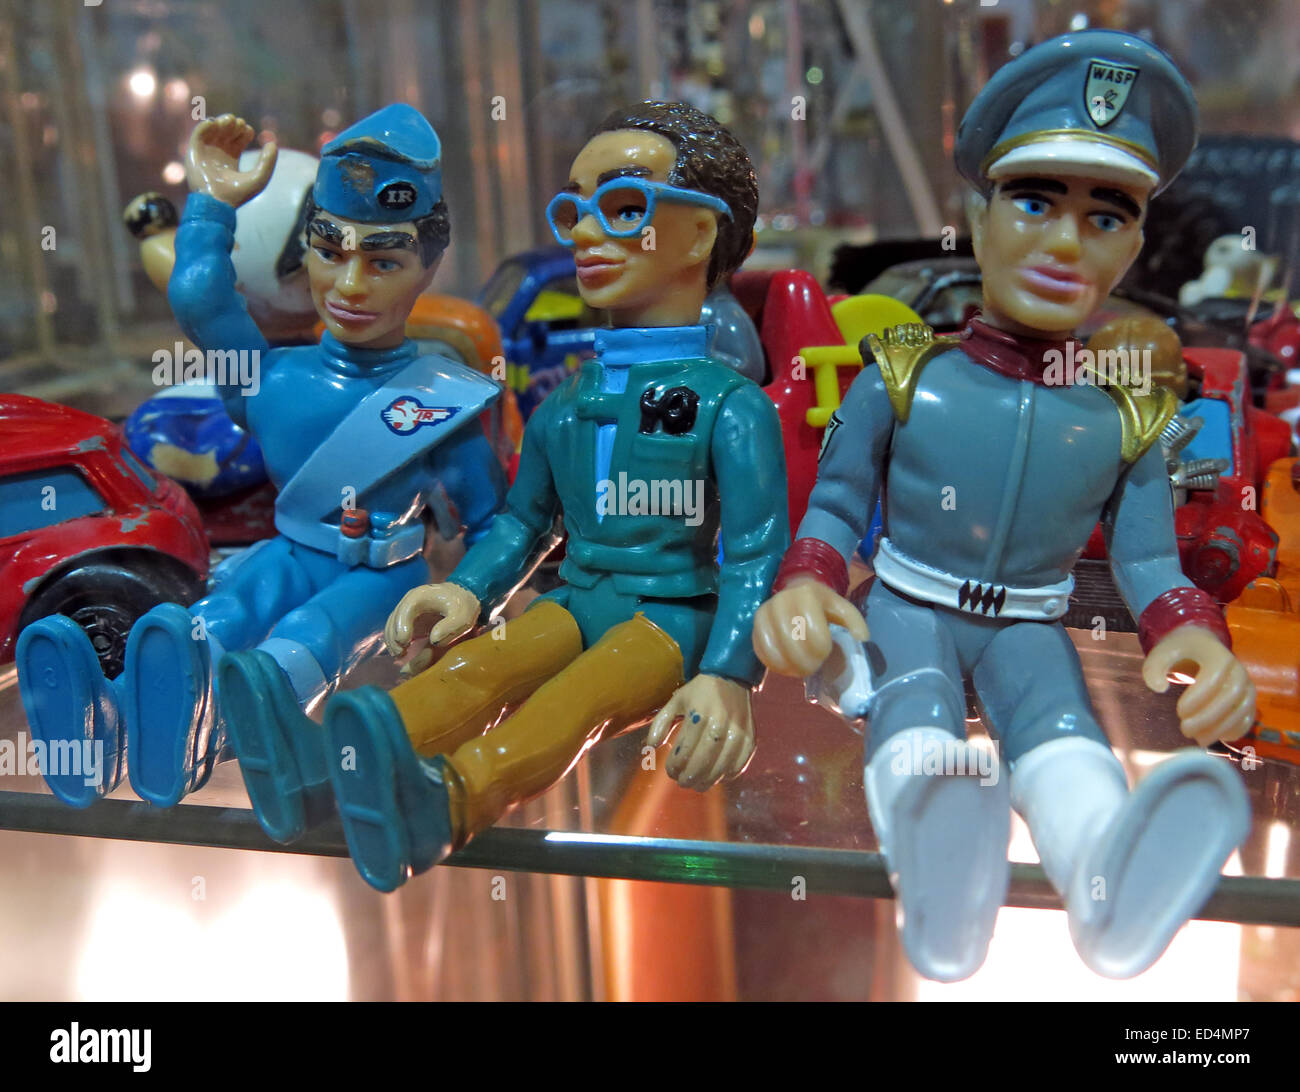 Plastic Thunderbird toy figures in  acabinet. Brains, Scott Tracy and Jeff. - Stock Image